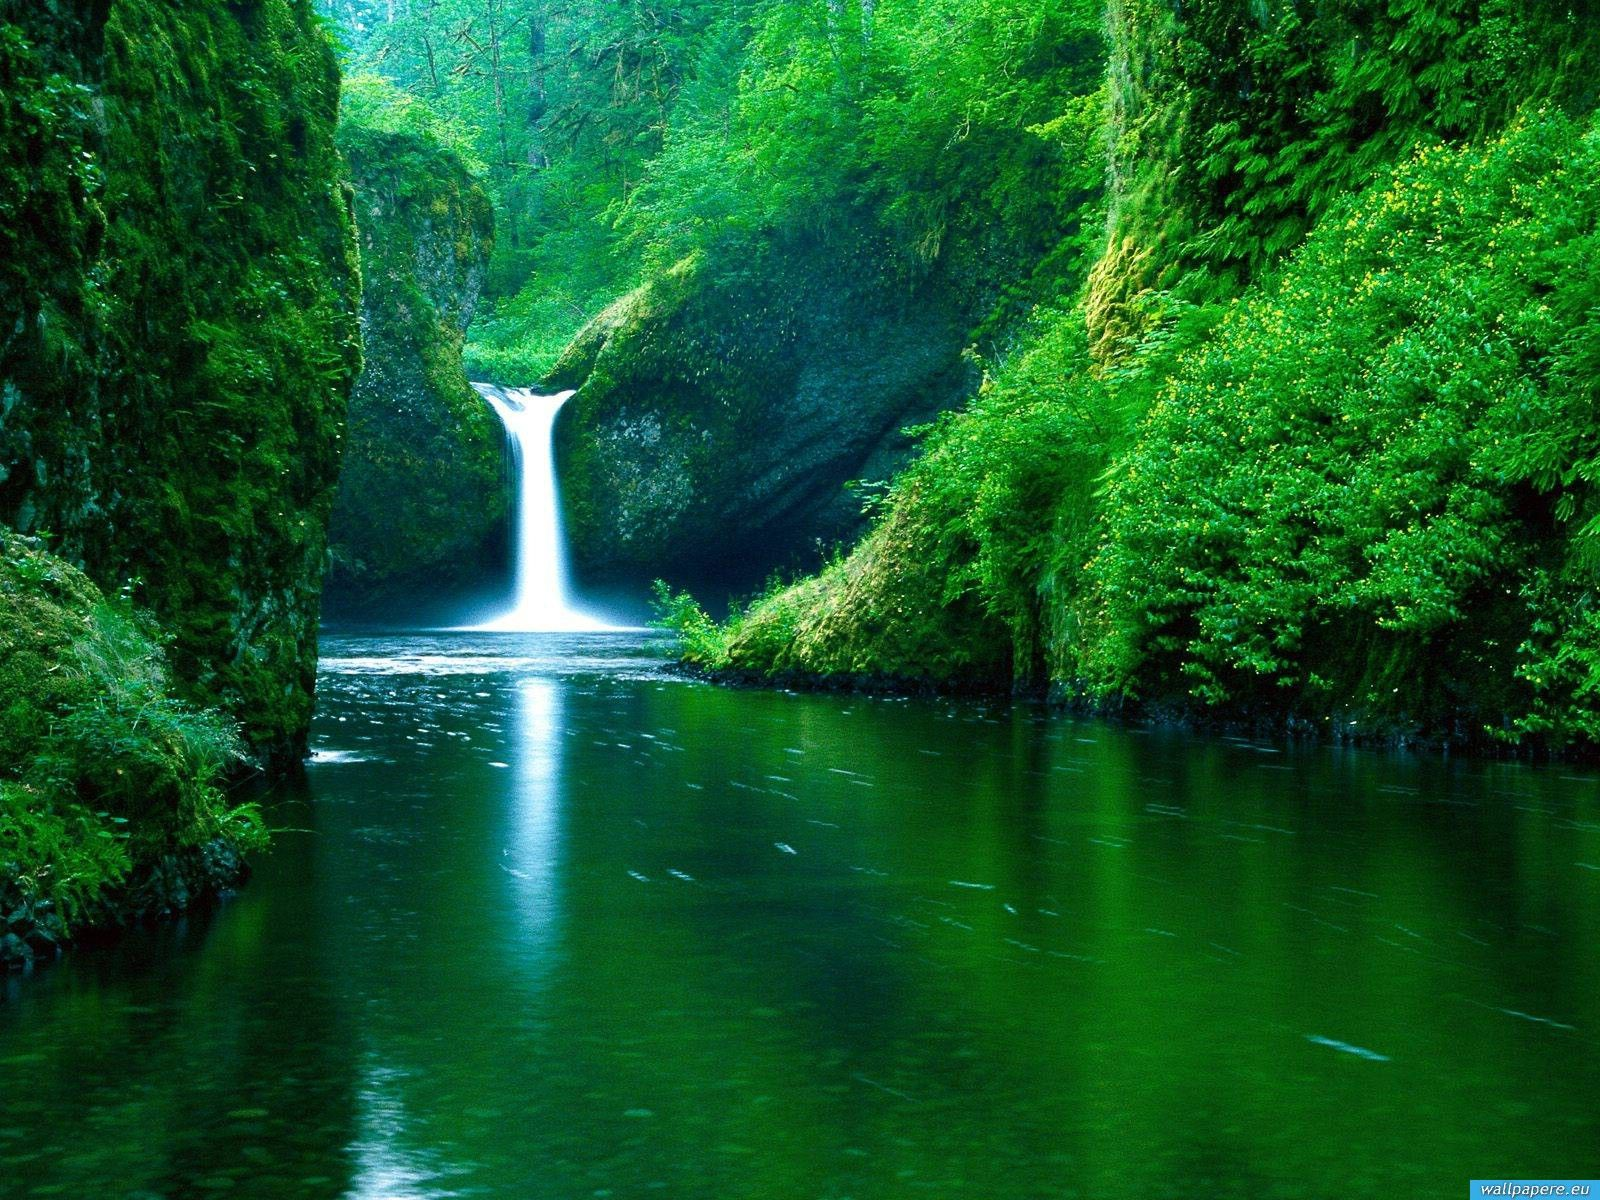 Nature Wallpaper Nature Wallpaper Hd Nature Wallpaper Hd Greenish Nature Wallpaper Waterfall Waterfall Wallpaper Punchbowl Falls